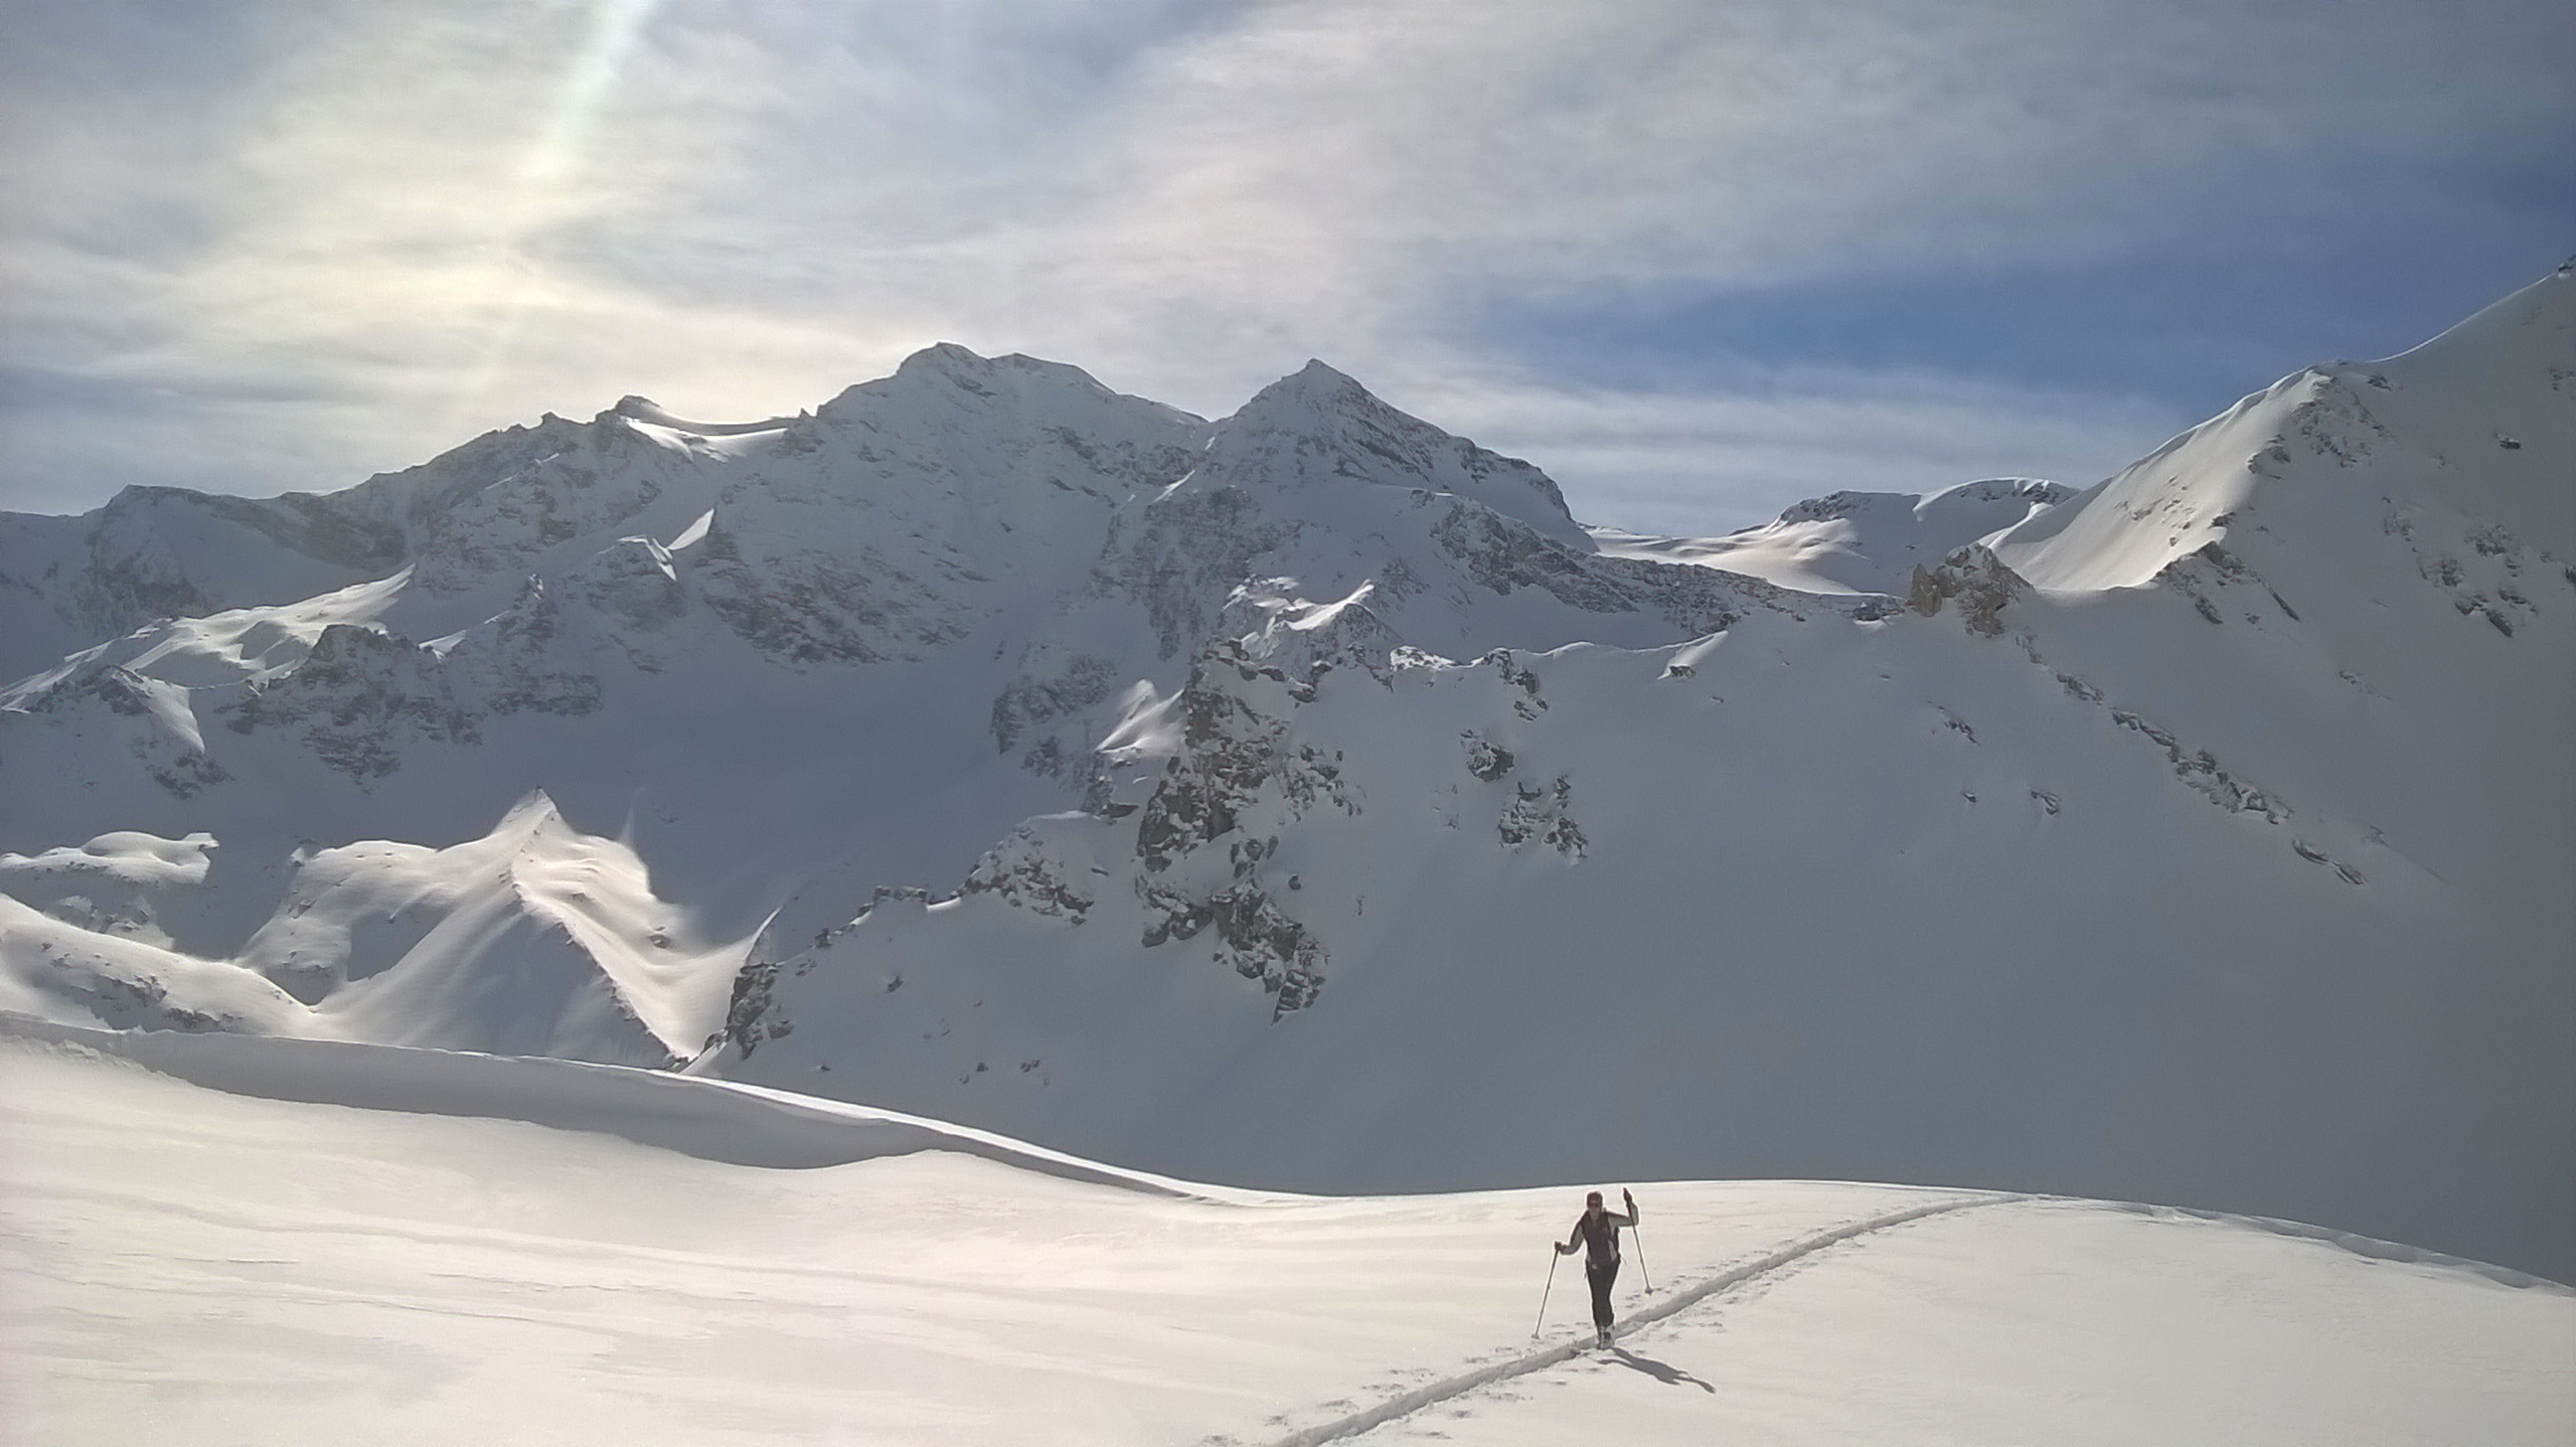 CIME BIANCHE2